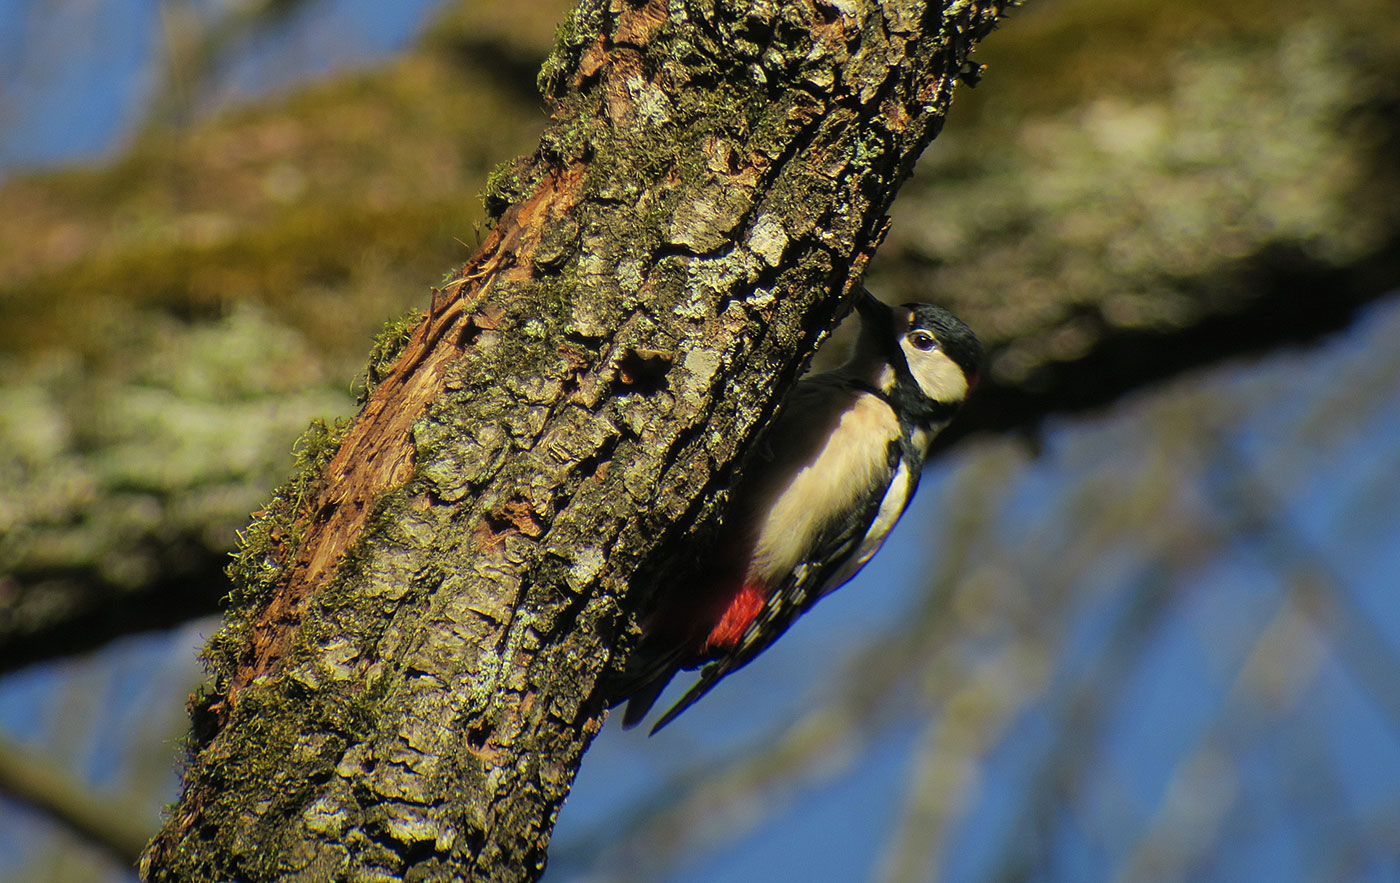 06_buntspecht_great-spotted-woodpecker_ammersee_2019-02-23_7129